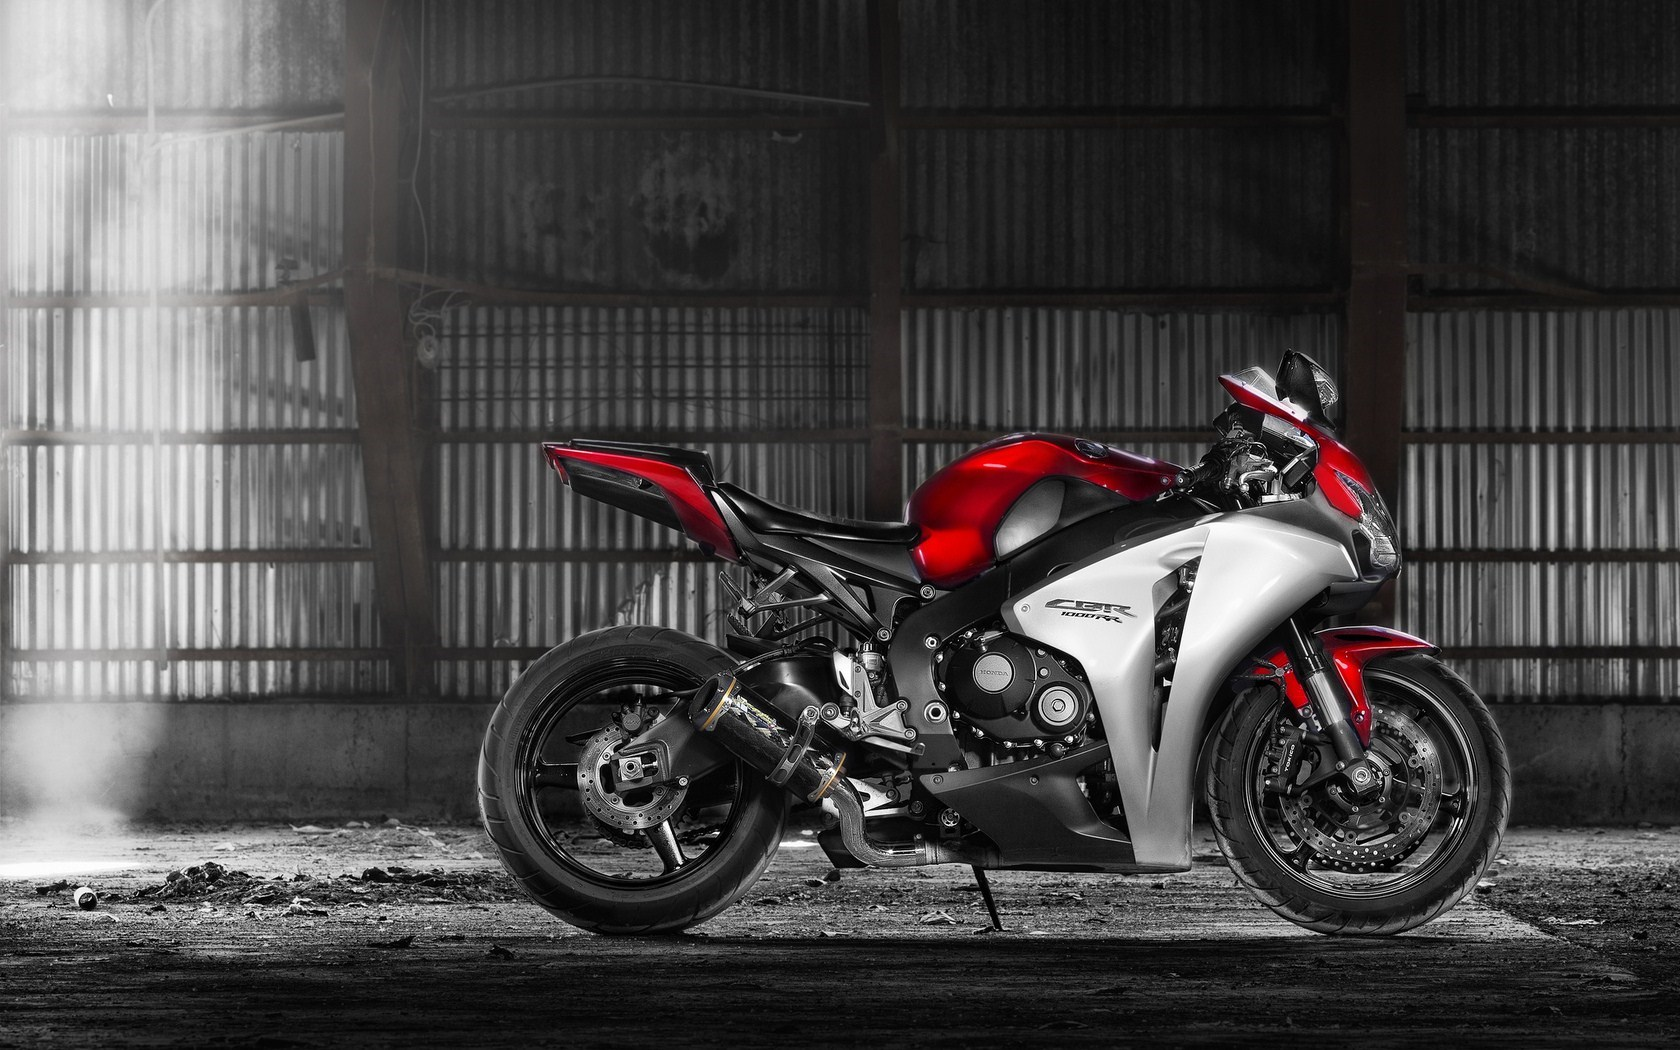 Abstract Anime Wallpaper Bike And Industrial Wallpapers Wide Screen Wallpaper